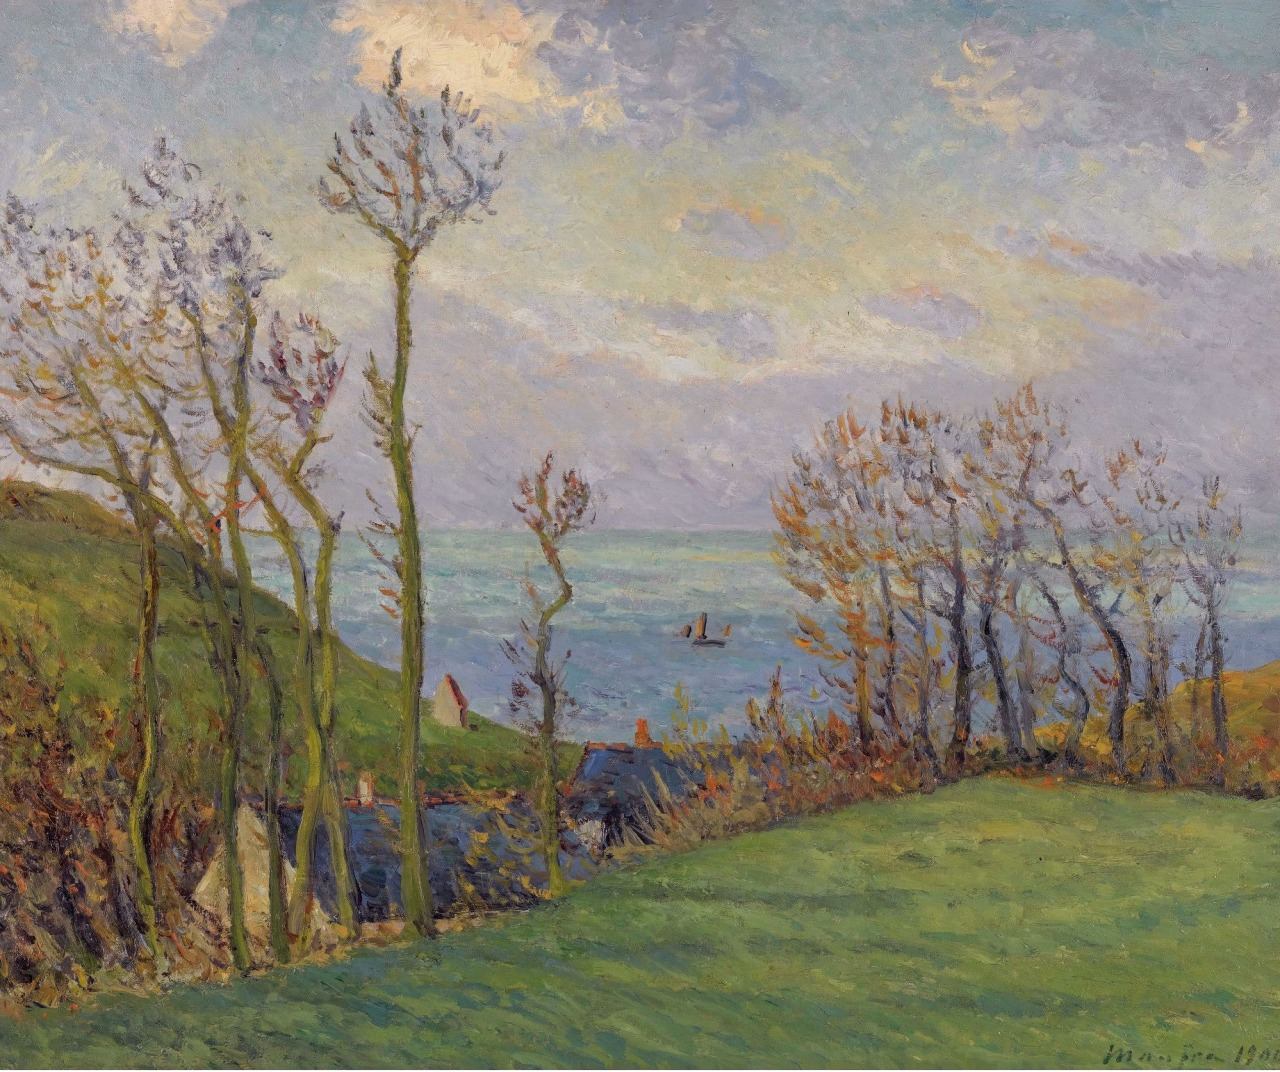 Maufra1